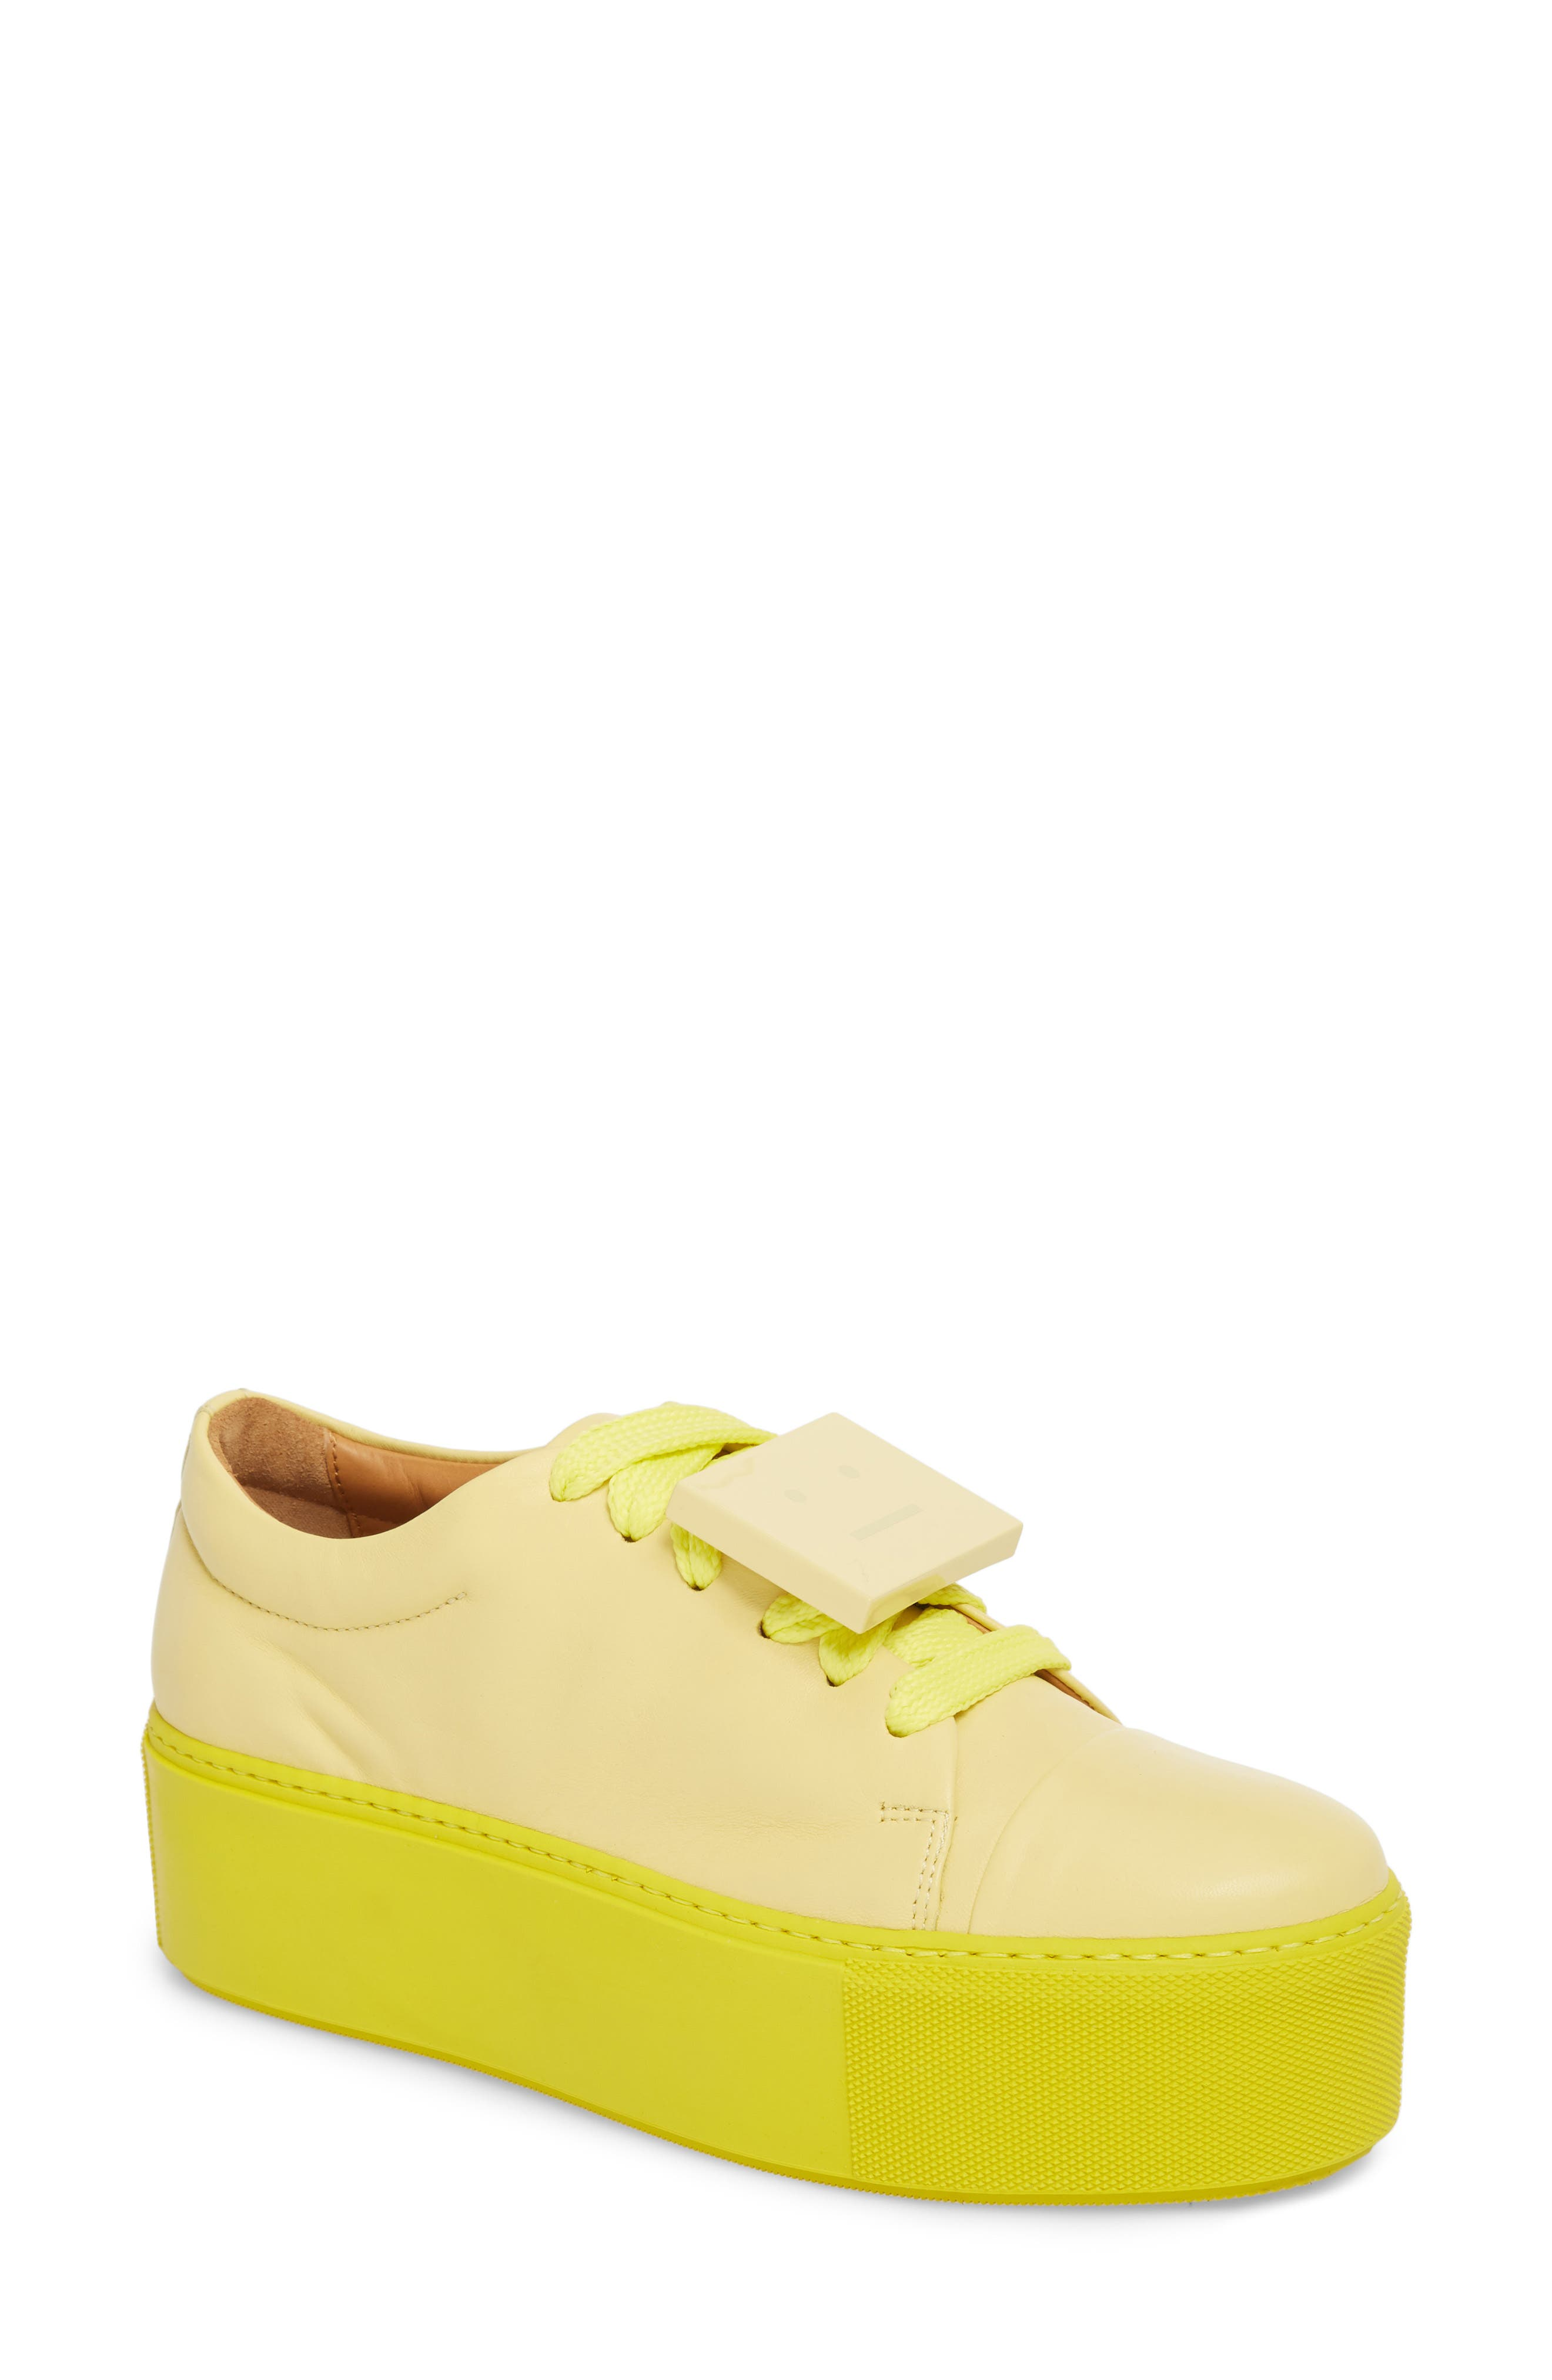 Acne Studios Drihanna Nappa Leather Platform Sneaker (Women)